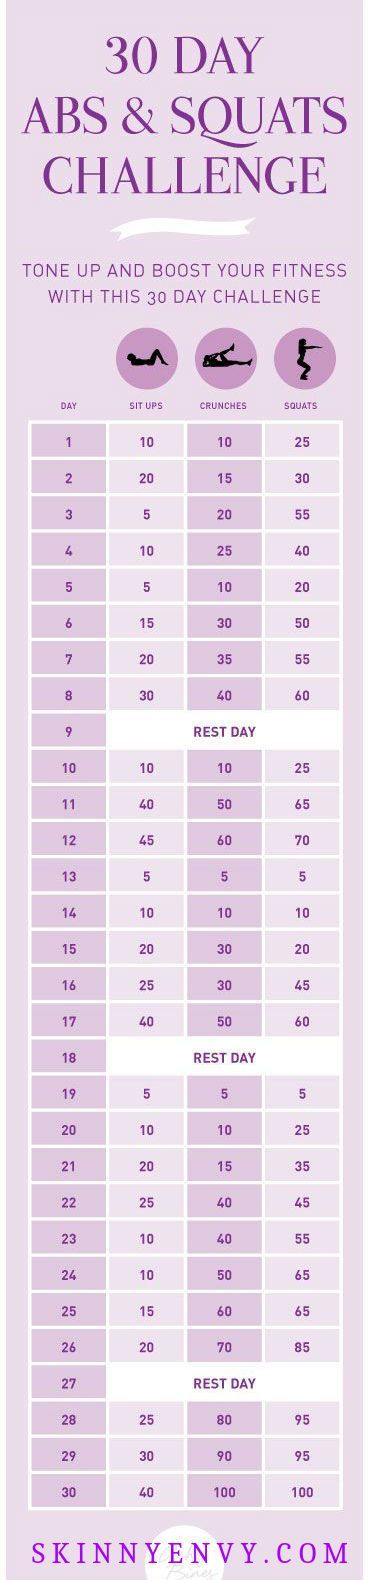 Try this abs challenge and you will get great results! #fitnesschallenge #flatabs #slimdown